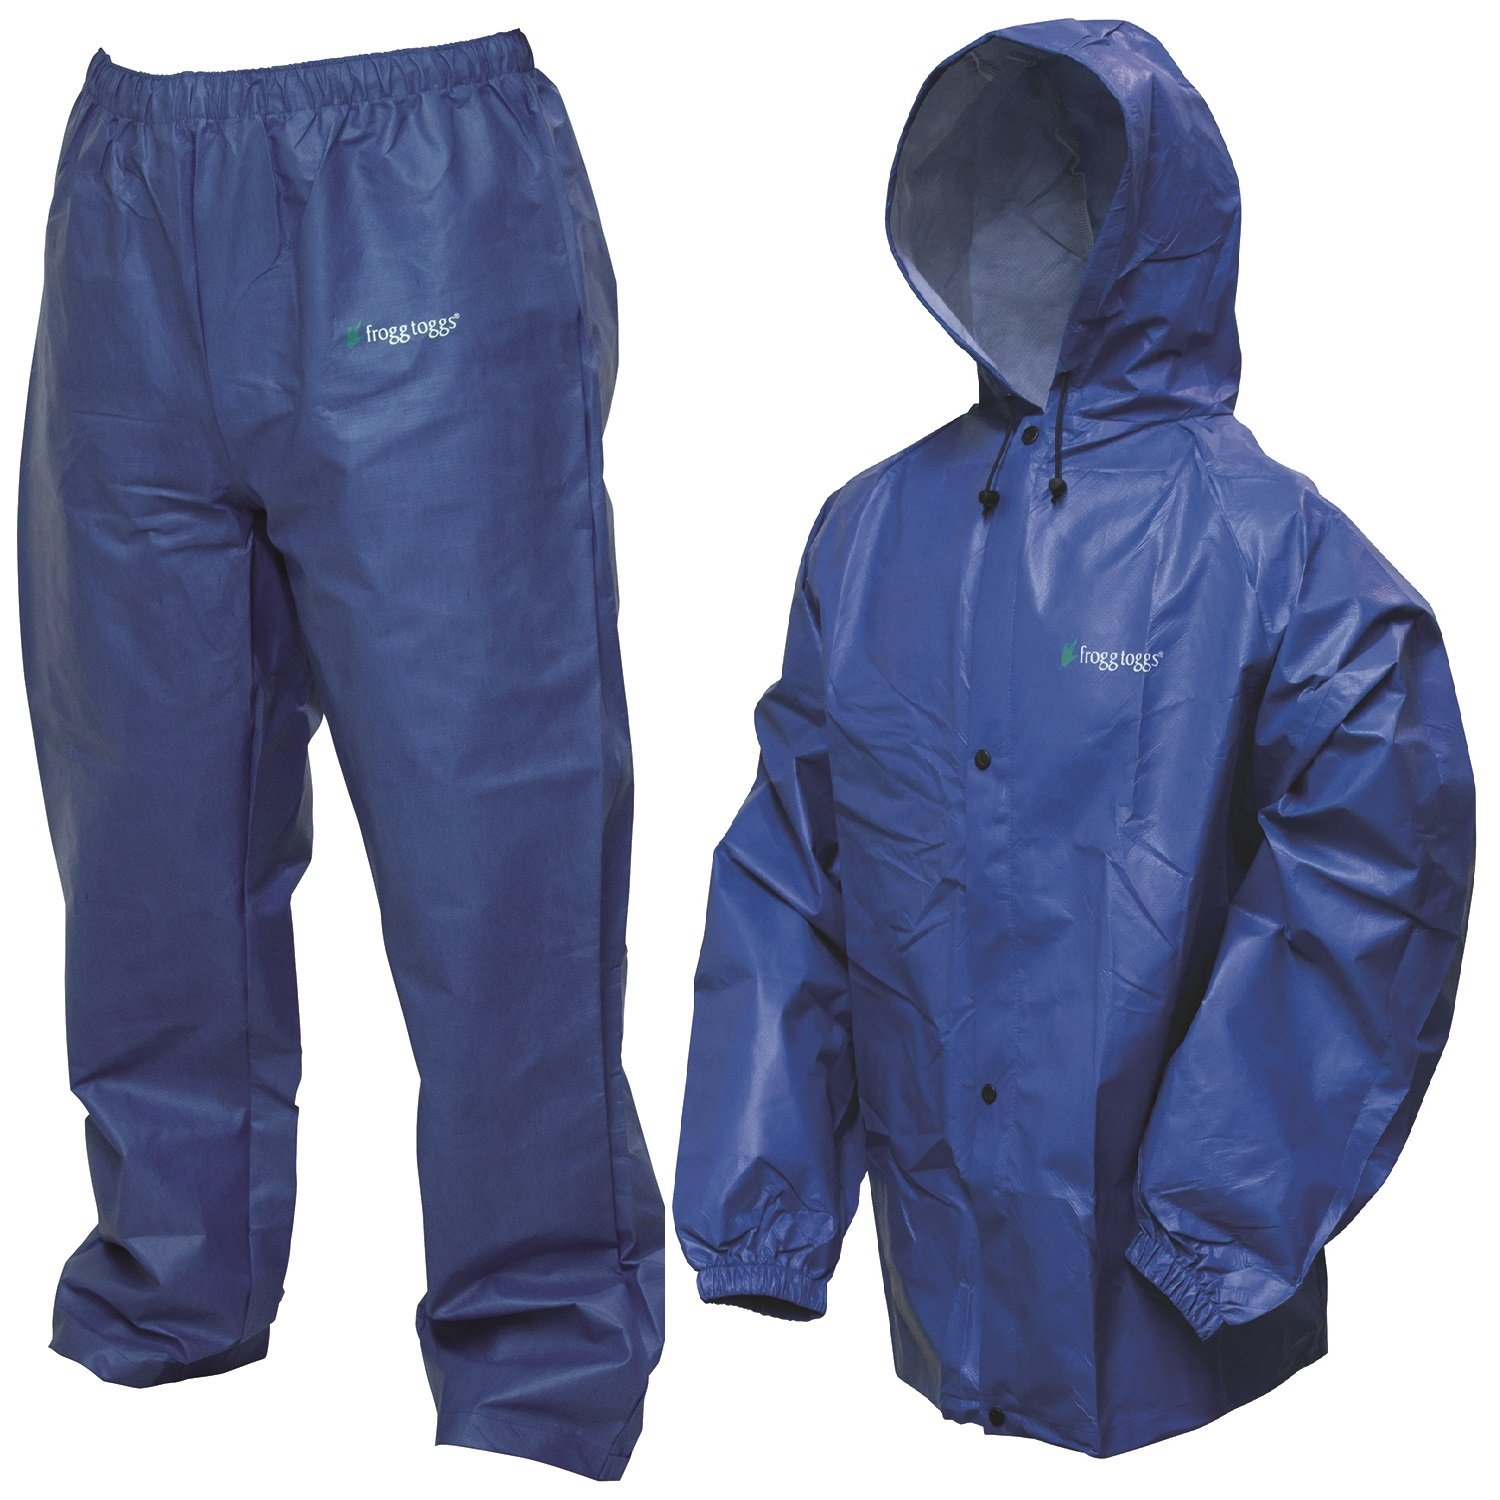 Royal blue frogg toggs pro lite rain suit medium large for Rain suits for fishing